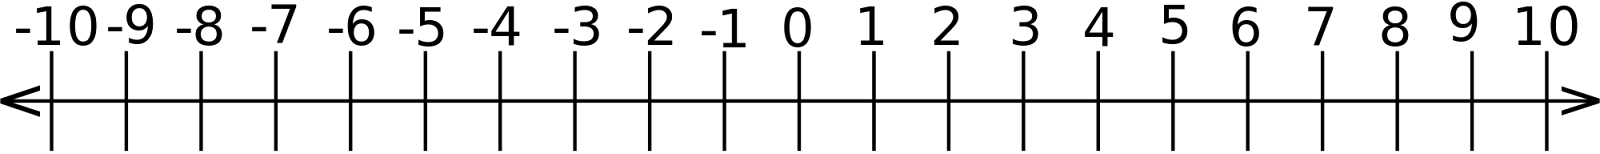 https://upload.wikimedia.org/wikipedia/commons/thumb/c/c6/Real_Number_Line.svg/2000px-Real_Number_Line.svg.png